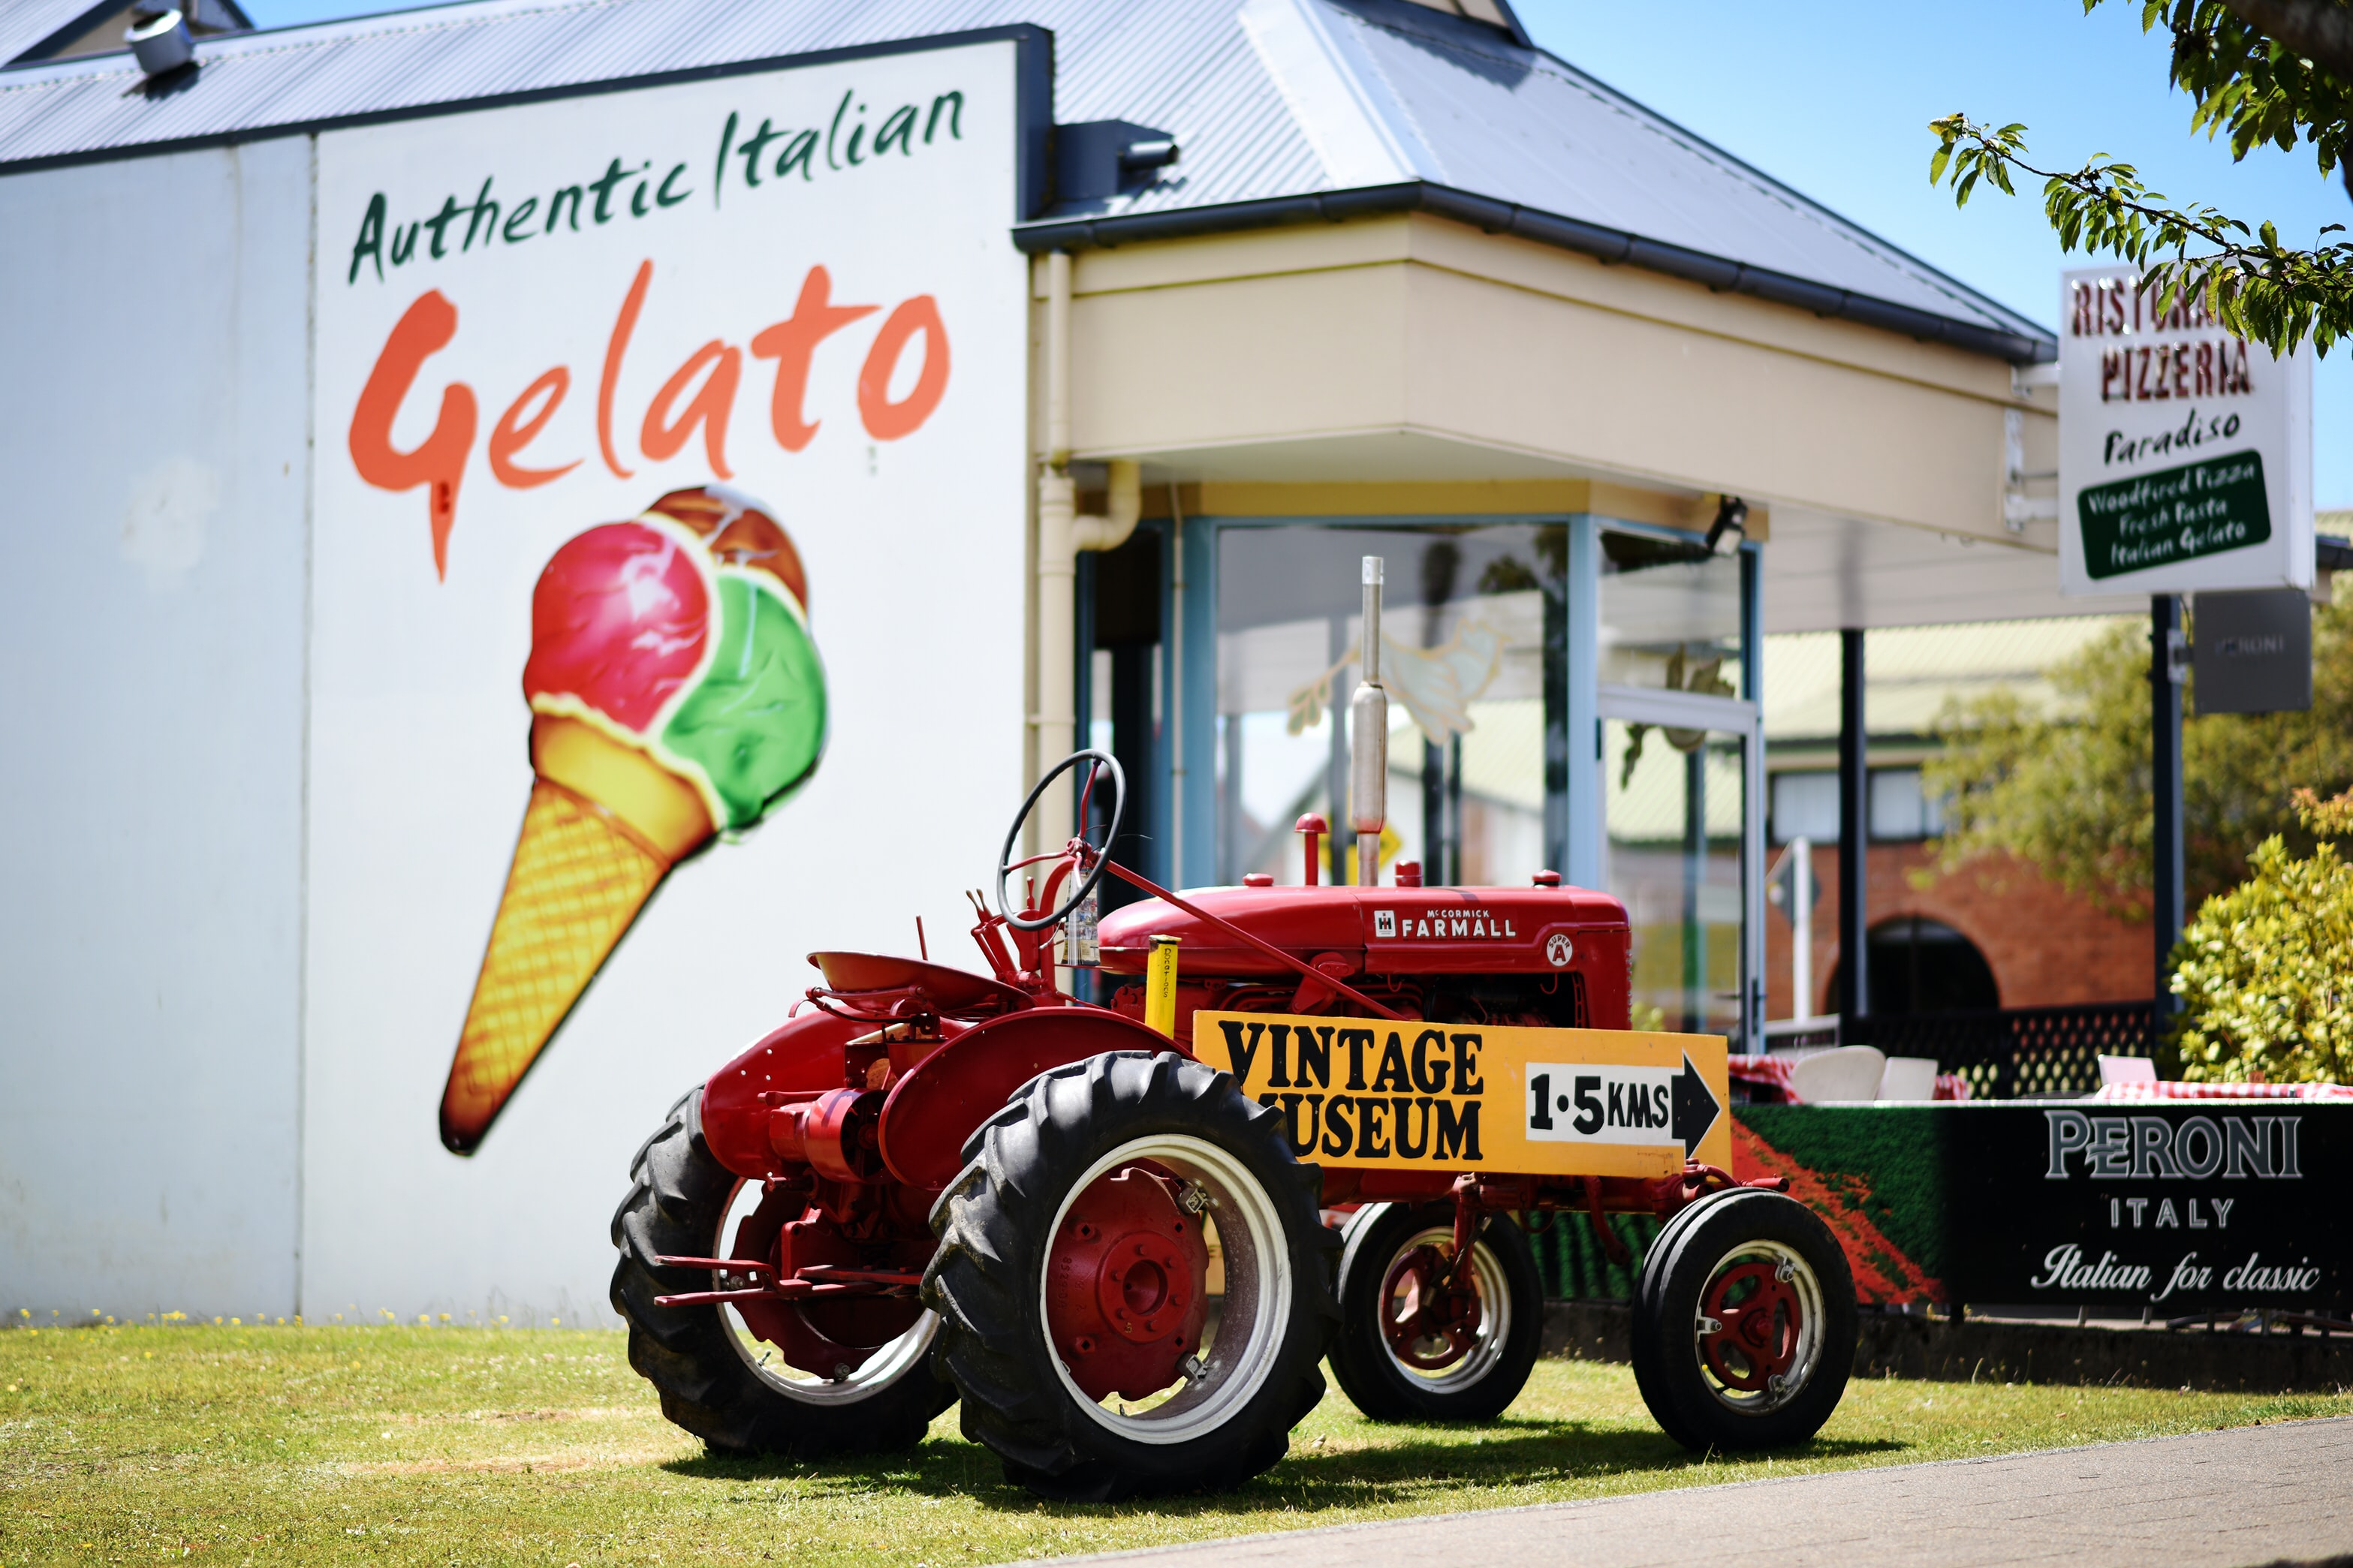 A vintage tractor sitting outside of a Gelato shop in New Zealand